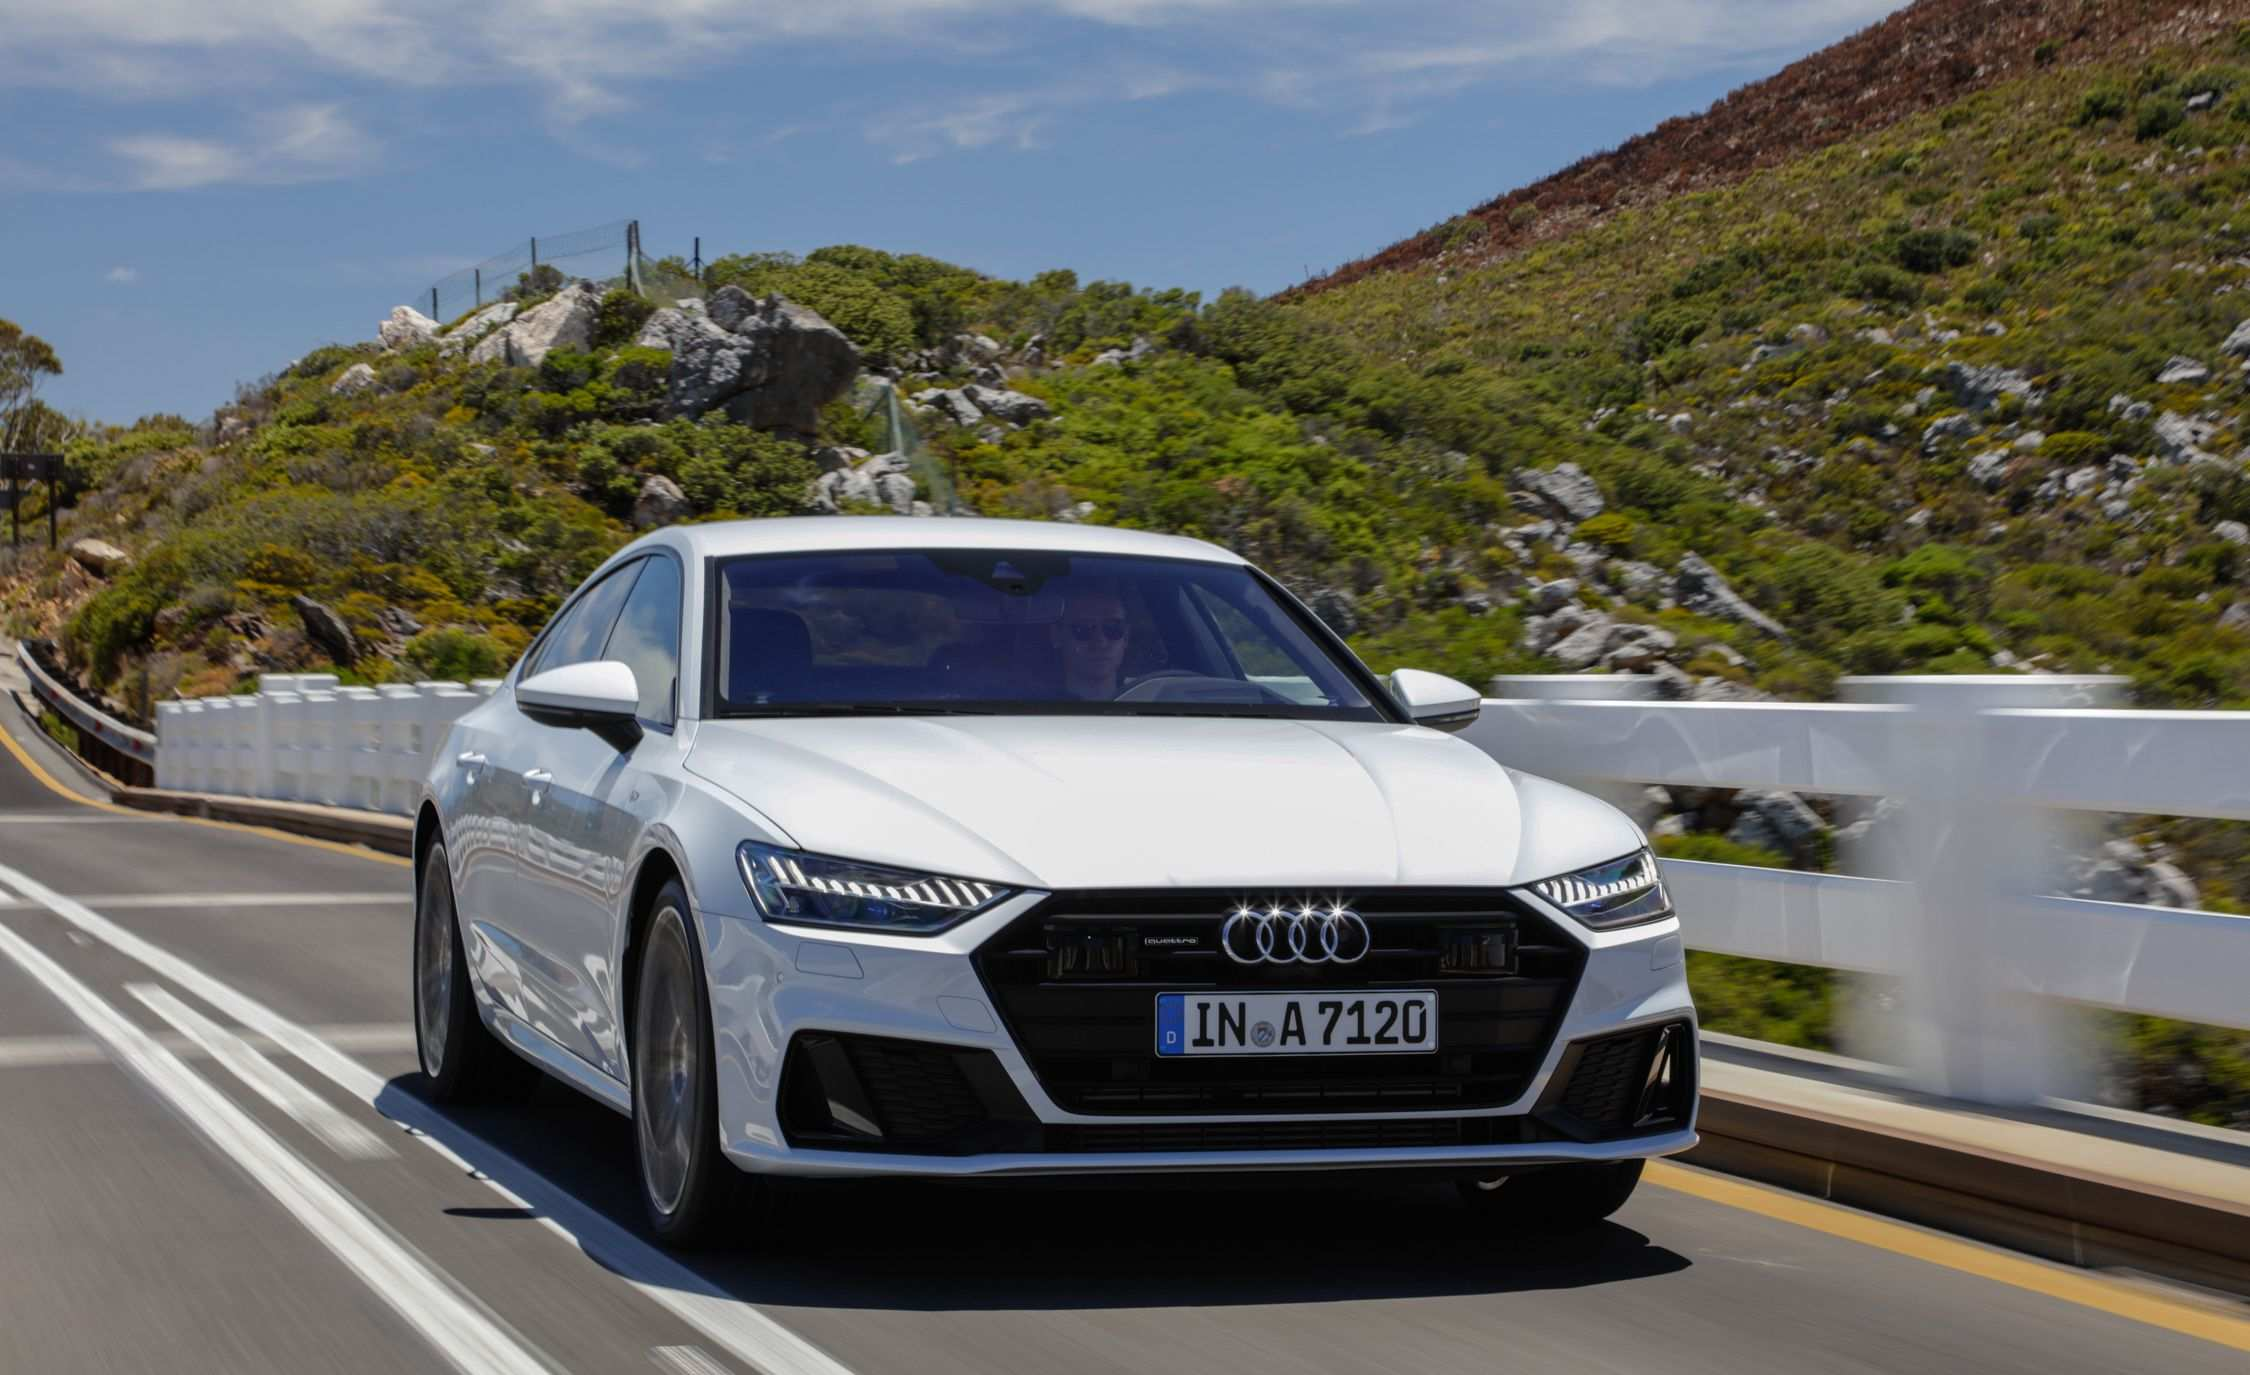 43 Great 2019 Audi A7 Release Date Wallpaper with 2019 Audi A7 Release Date